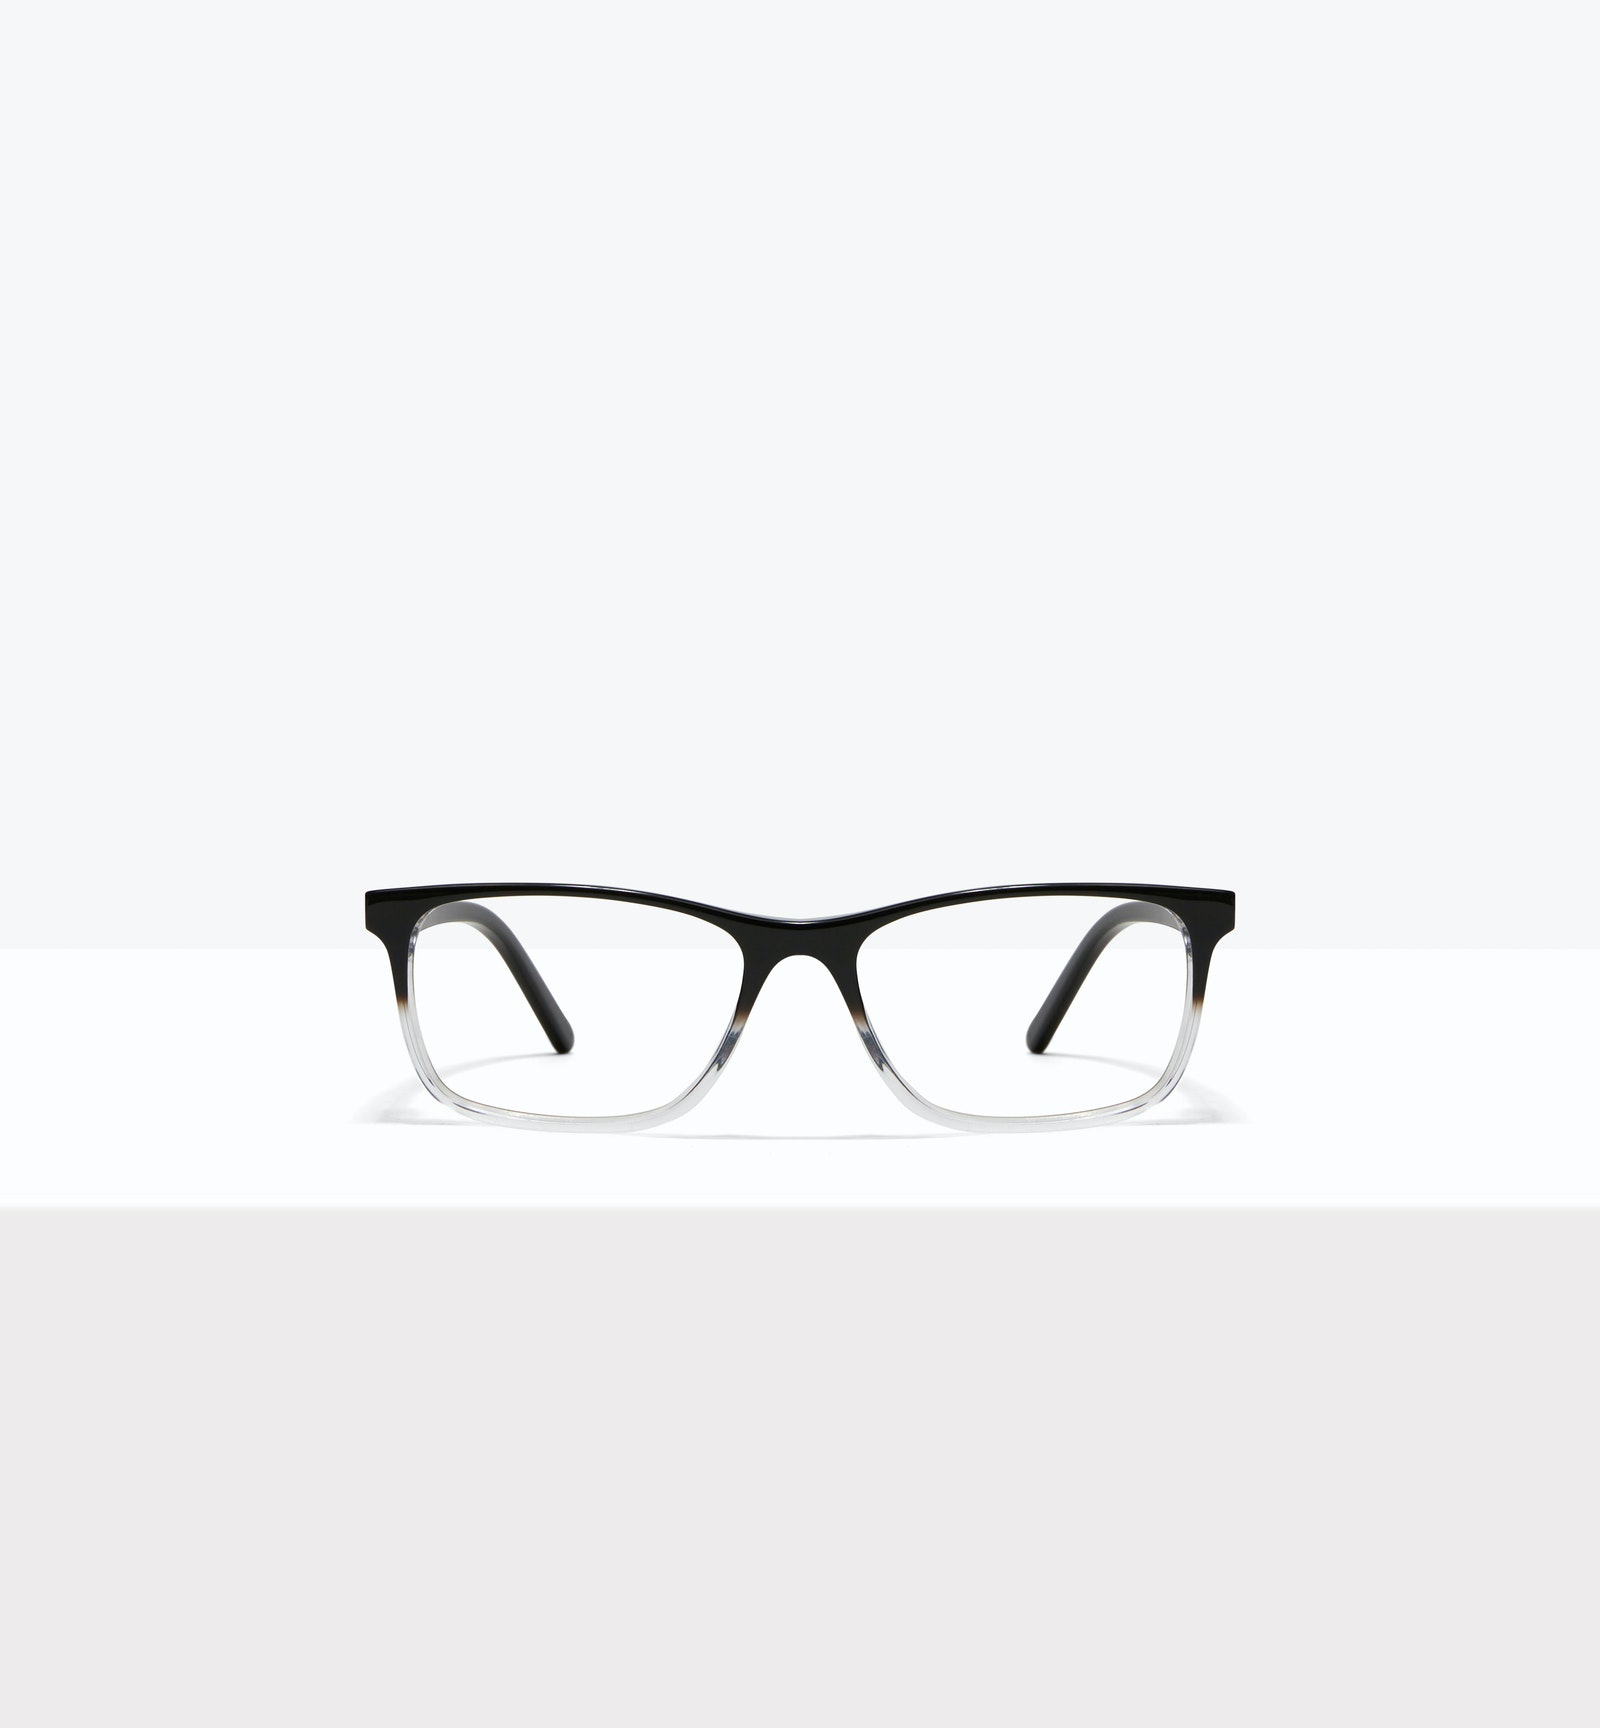 d68039938289 Affordable Fashion Glasses Rectangle Eyeglasses Men Henri Onyx Clear